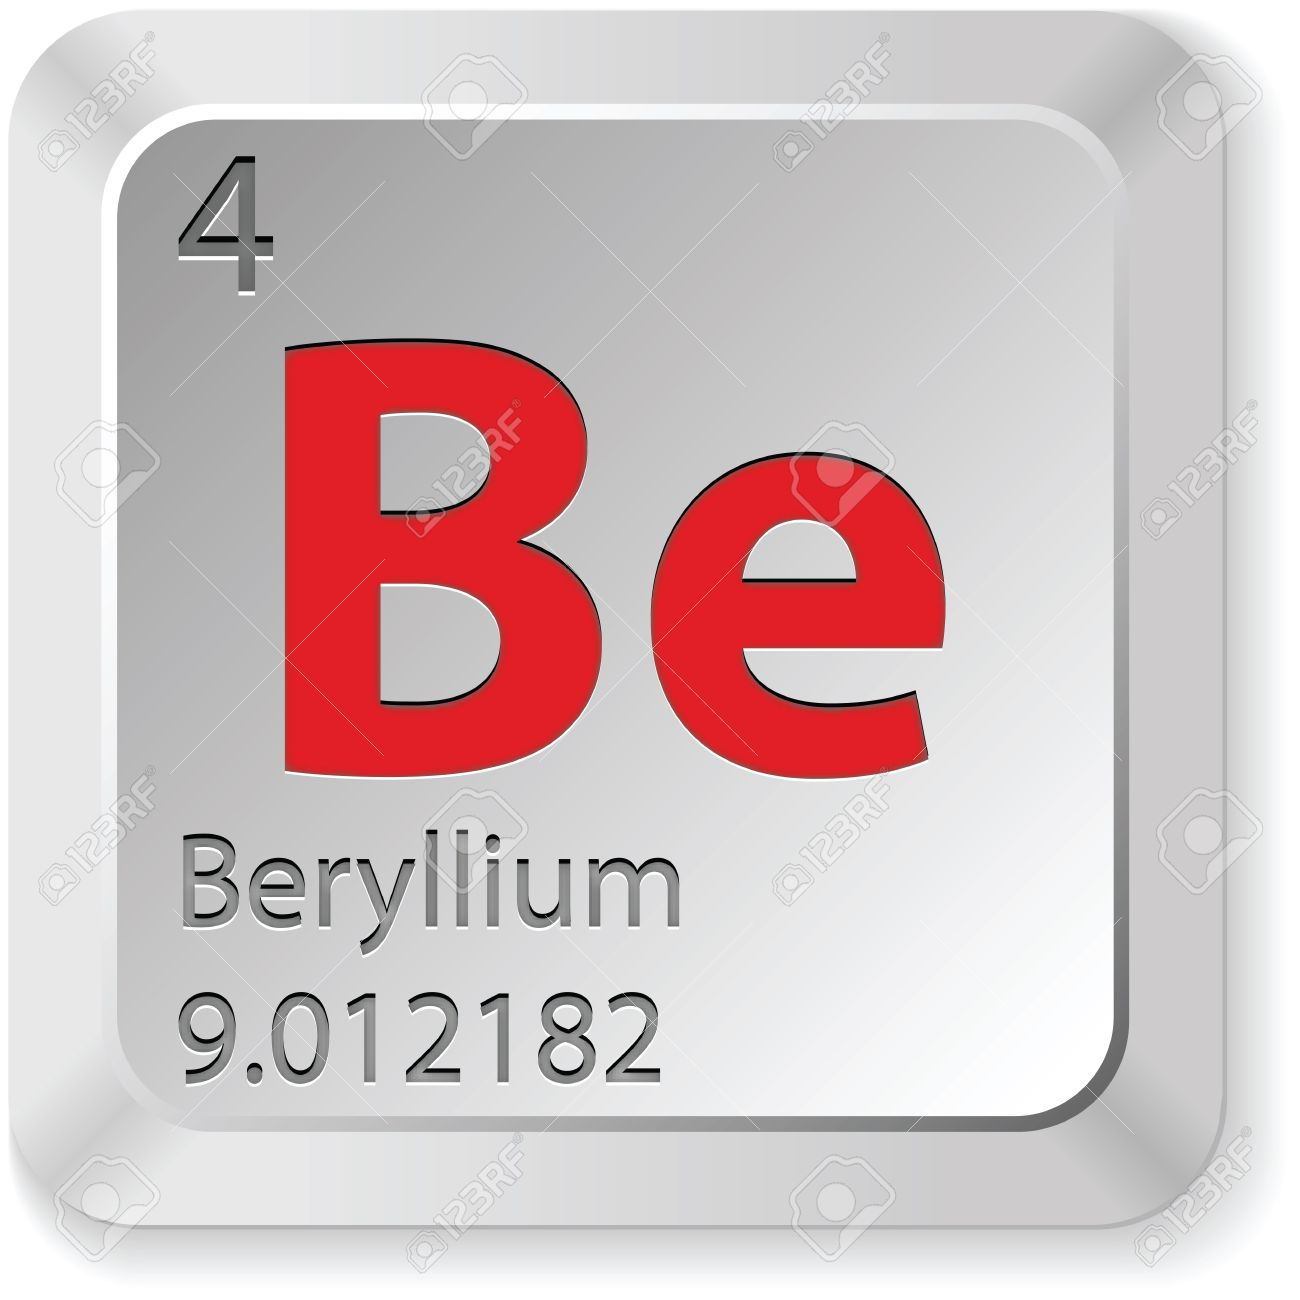 Beryllium chemical symbol images symbol and sign ideas beryllium chemical symbol images symbol and sign ideas beryllium button royalty free cliparts vectors and stock buycottarizona Image collections